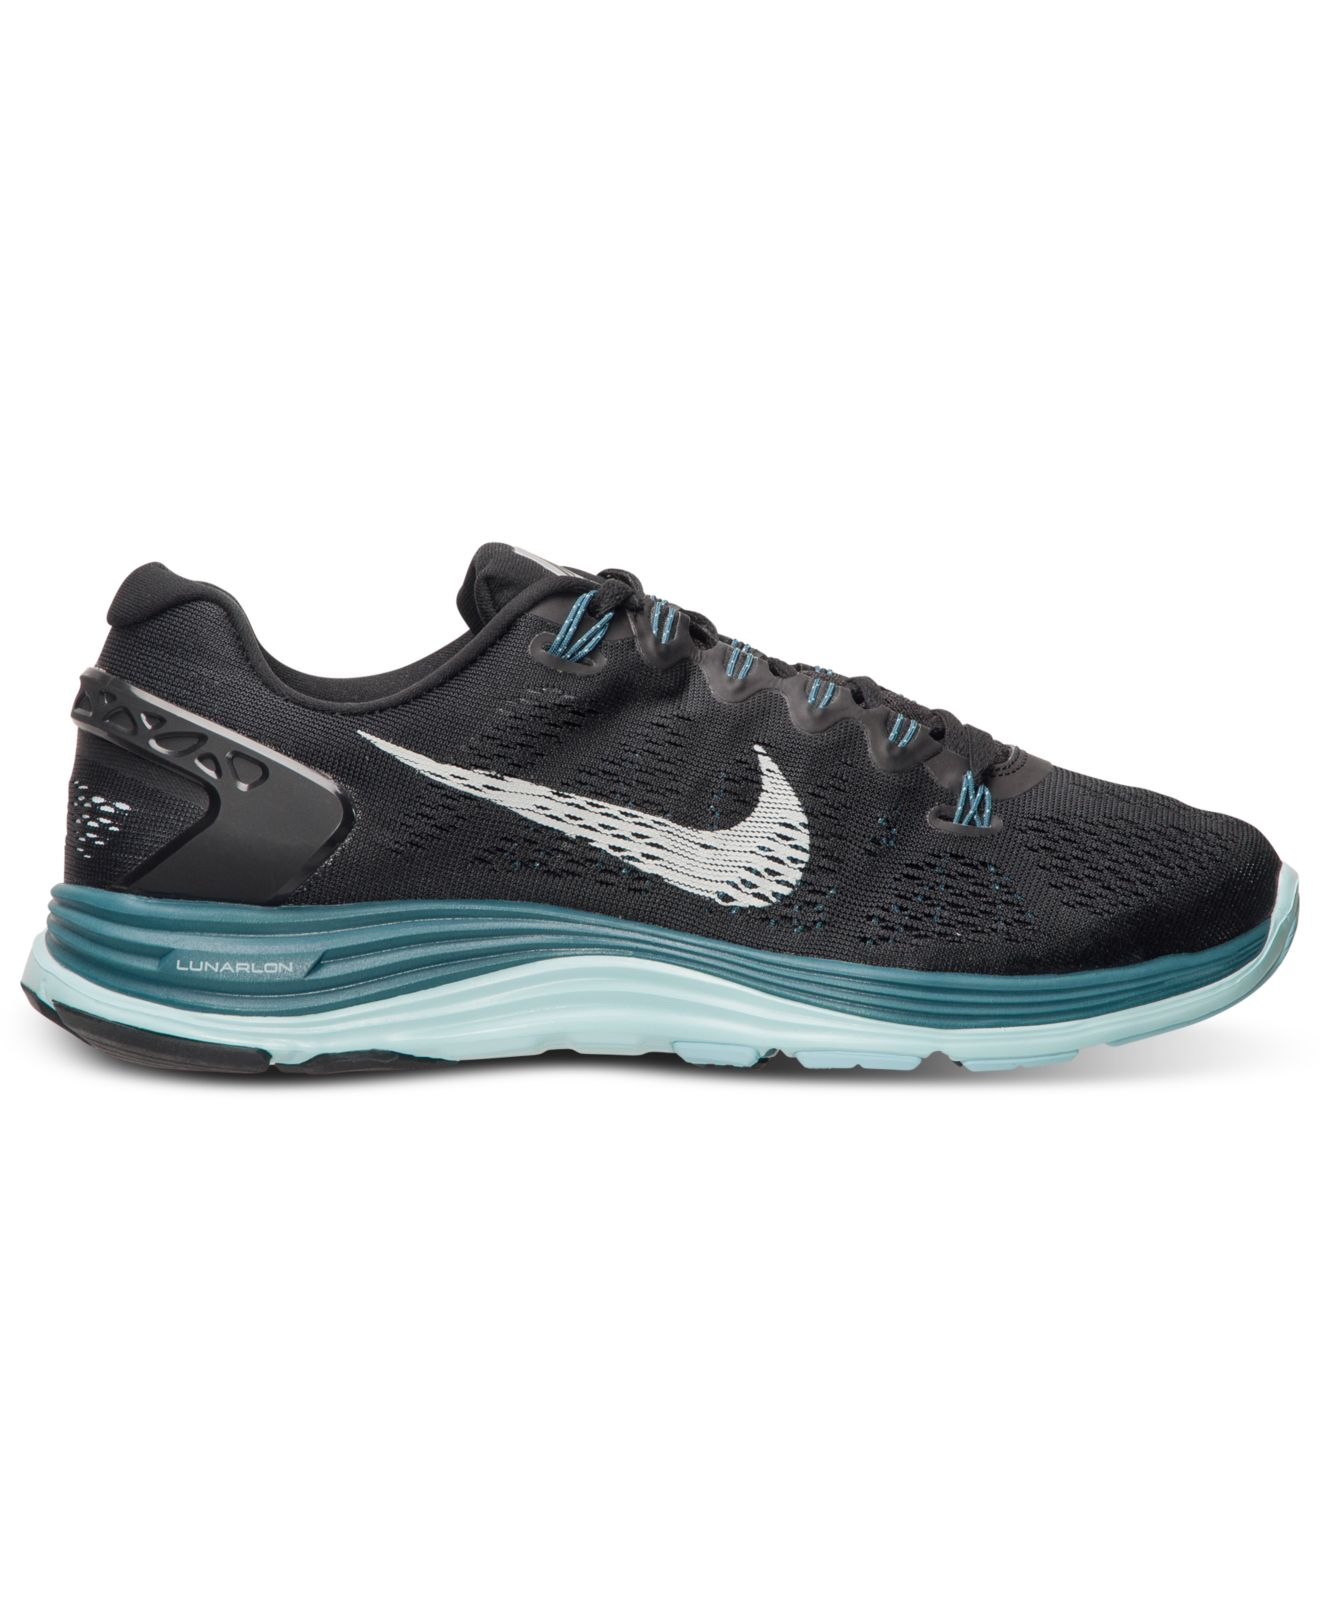 1afa7e5c9d0b3 ... where to buy lyst nike womens lunarglide 5 running sneakers from finish  line a890a 89b5f ...